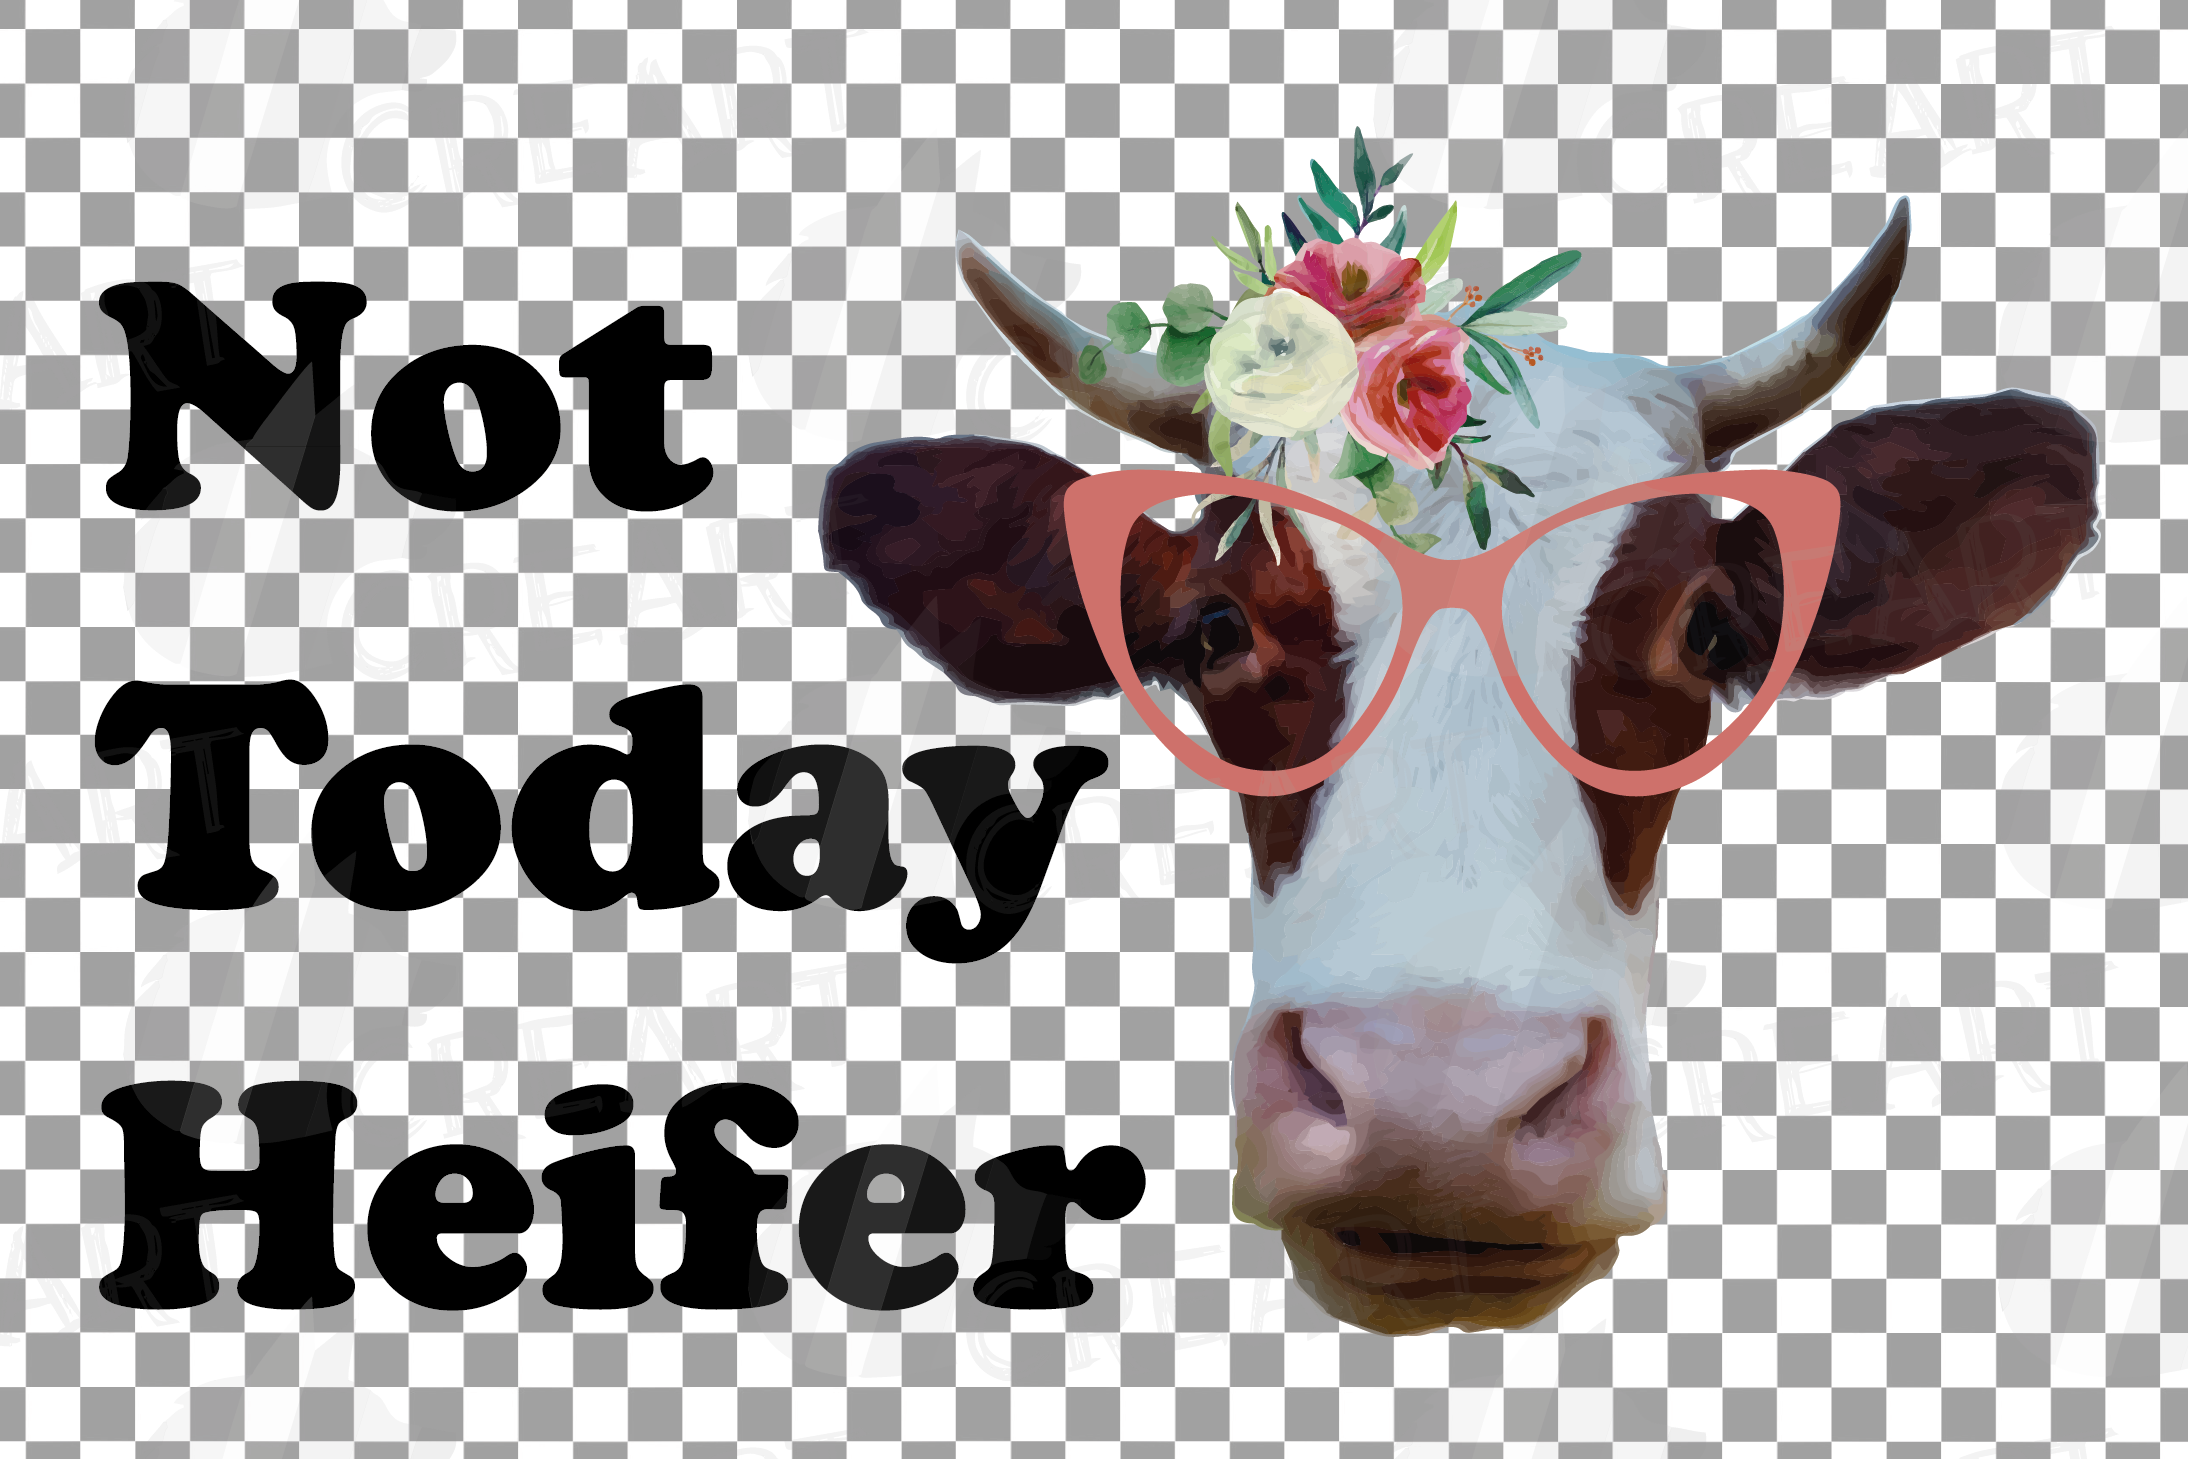 Cows with floral crown clip art. Not today heifer graphic example image 15